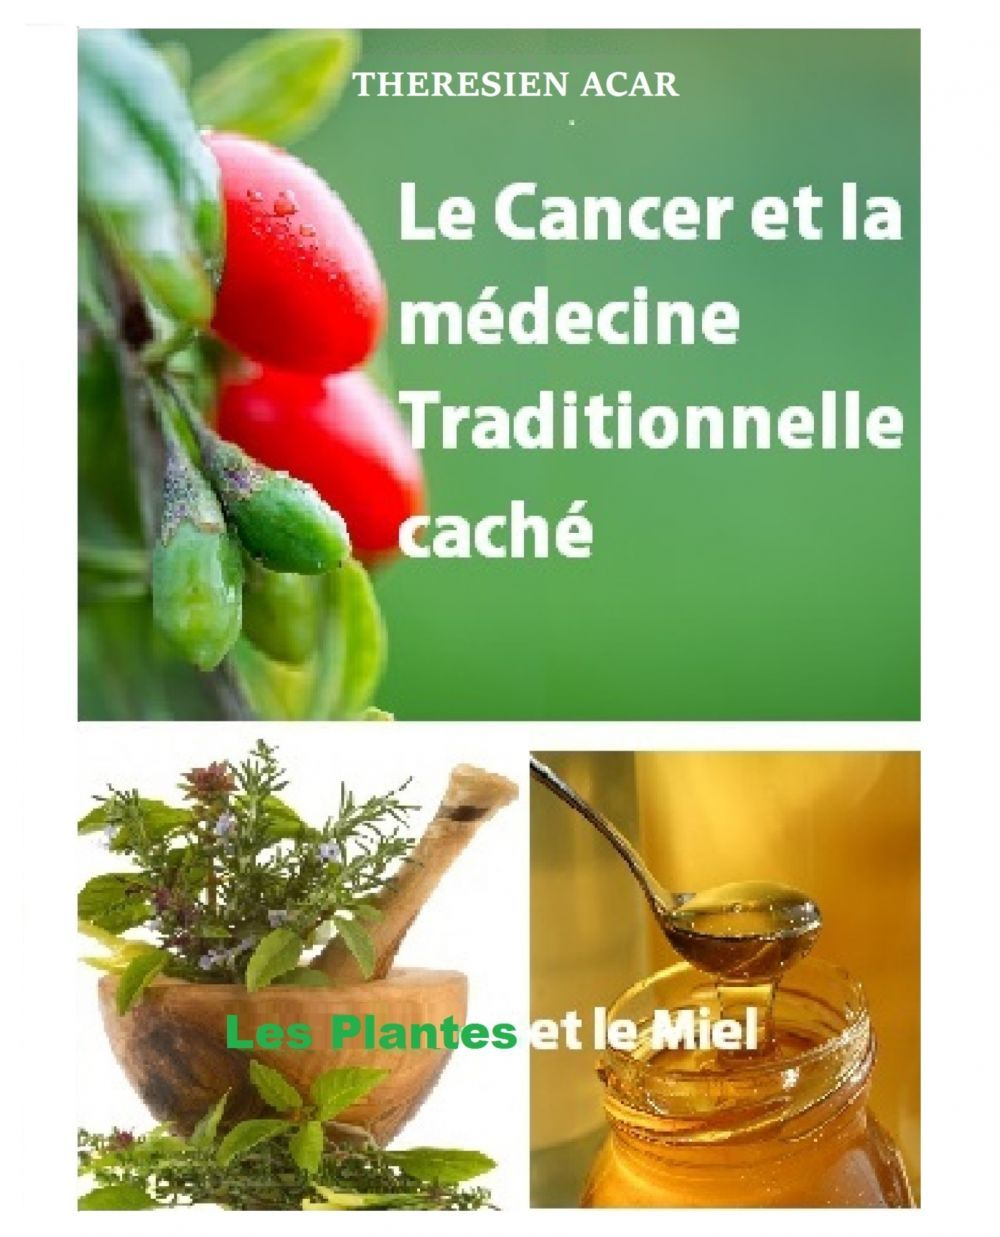 LE CANCER ET LA MÉDECINE TRADITIONNELLE CACHE